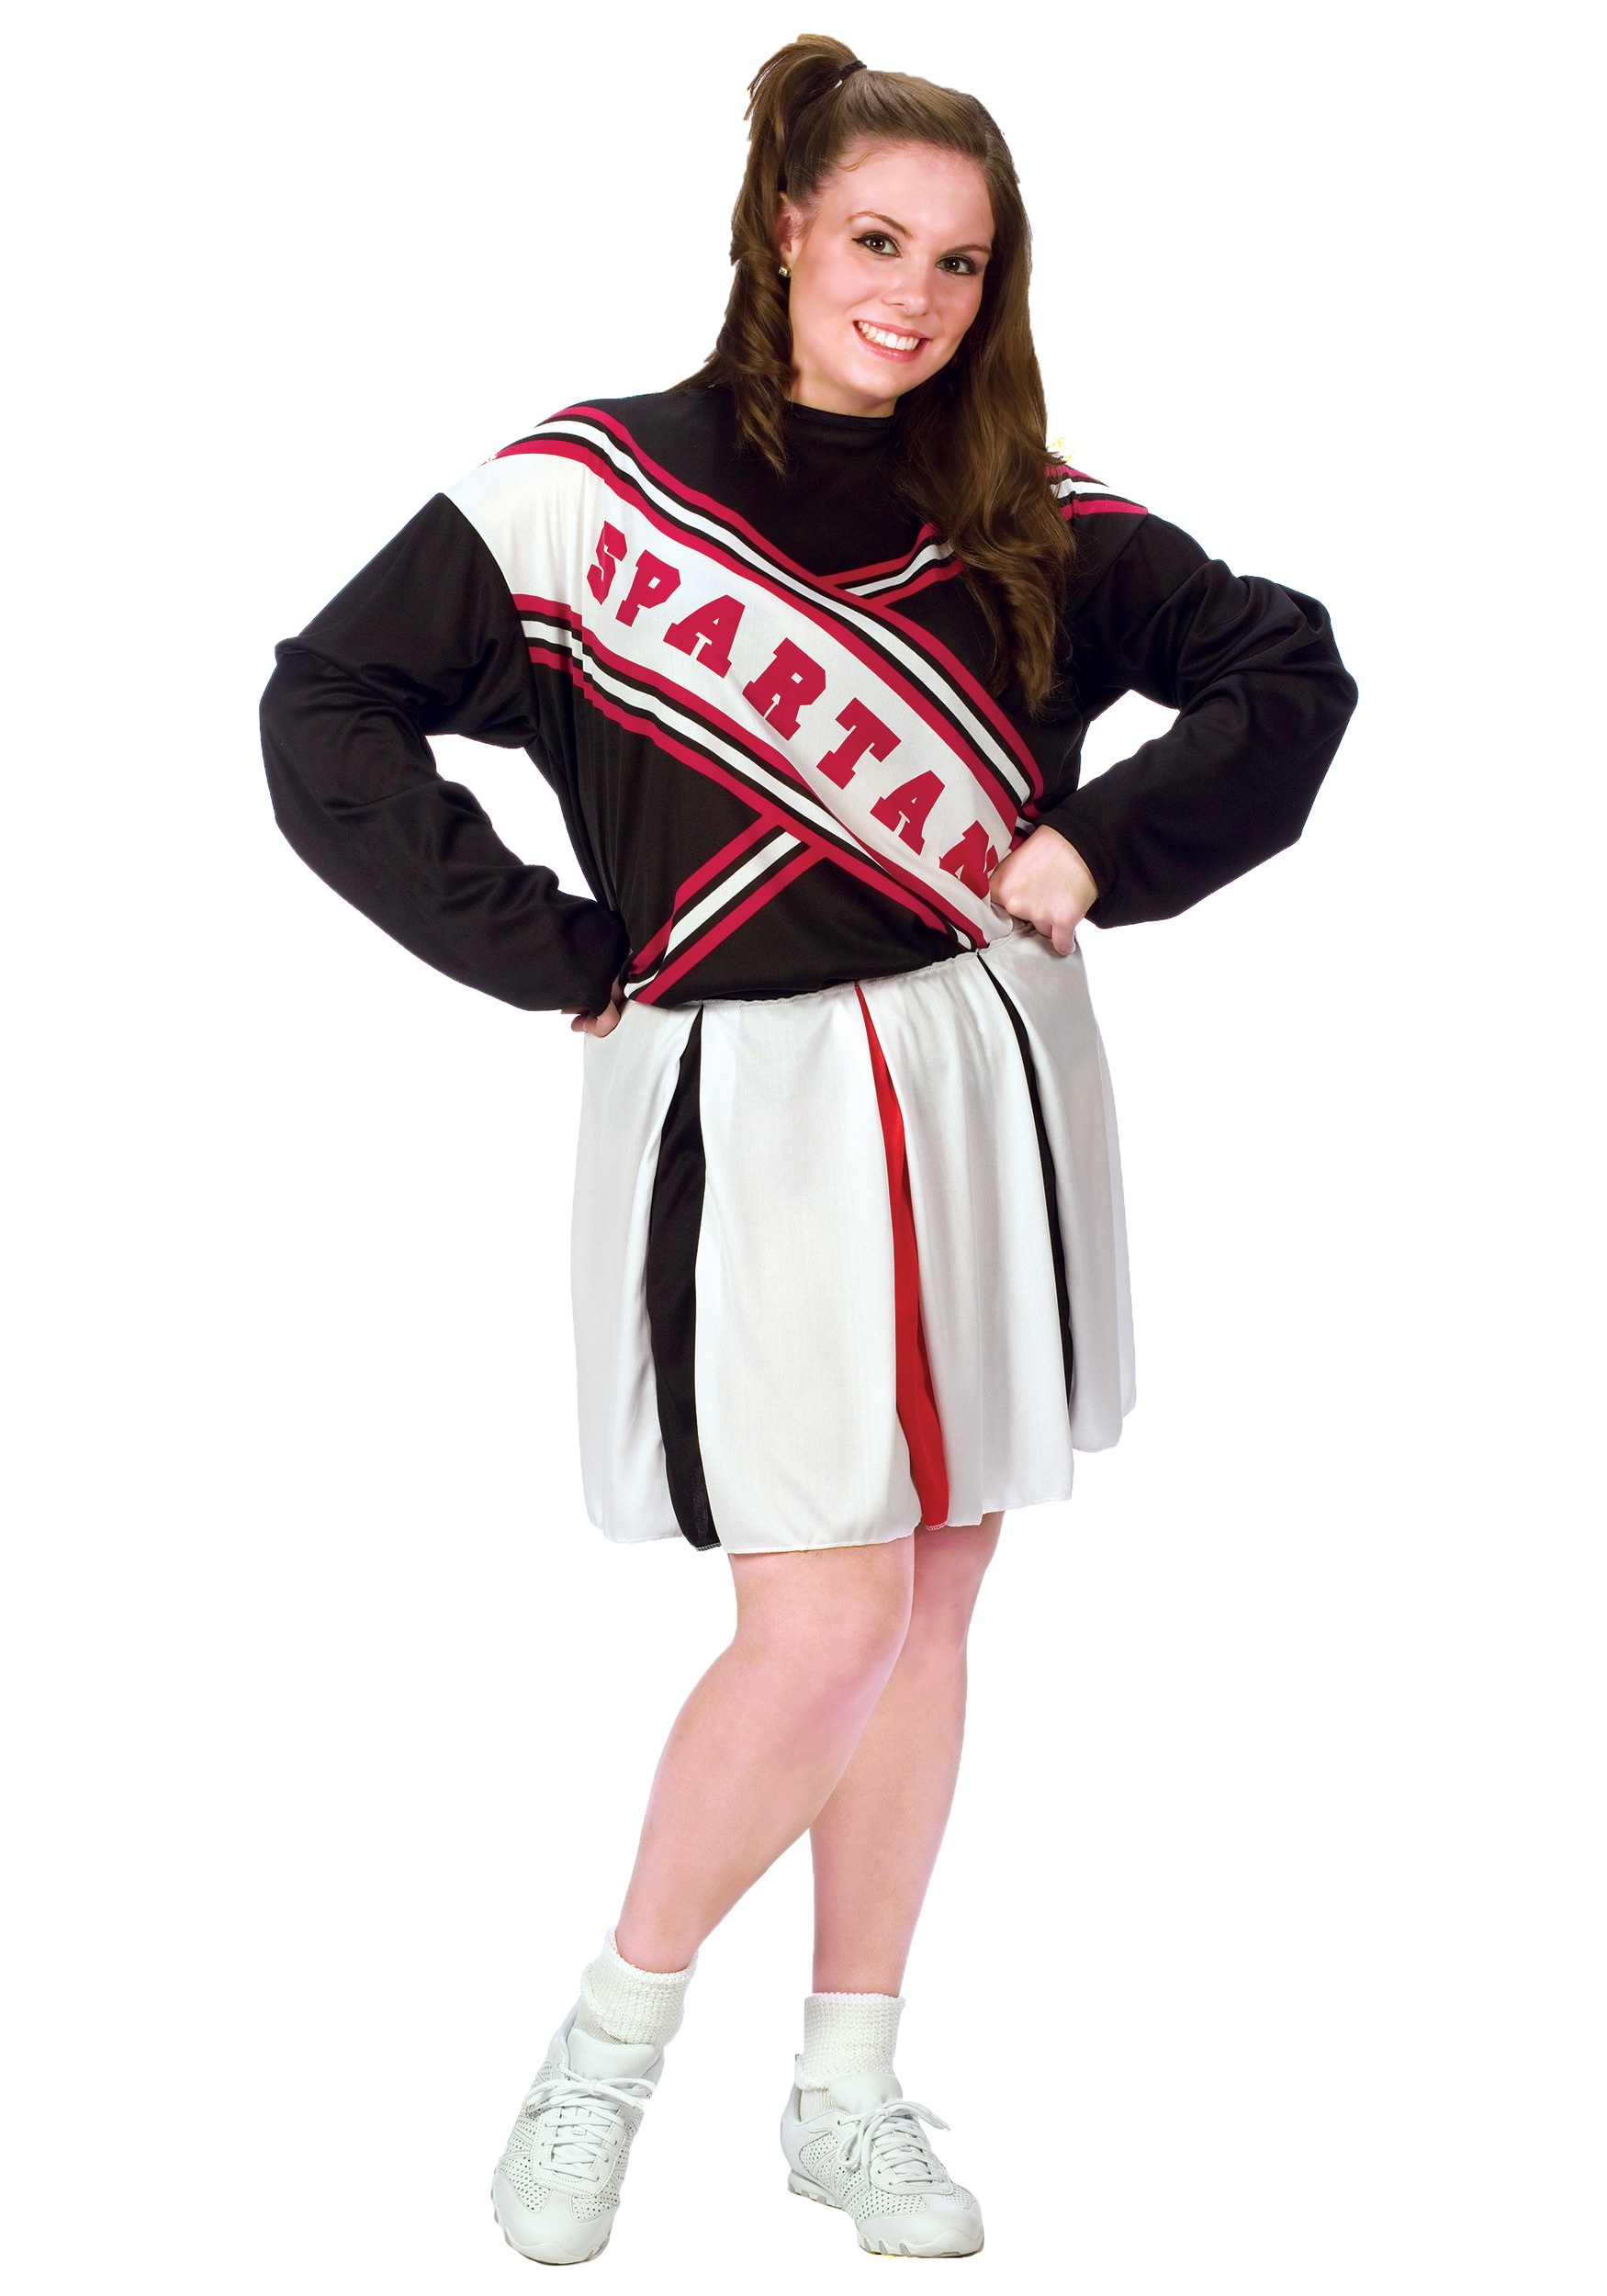 Female Spartan Plus Size Cheerleader  sc 1 st  Halloween Costume Ideas & Female Spartan Plus Size Cheerleader - Plus Size Spartan Cheerleader ...